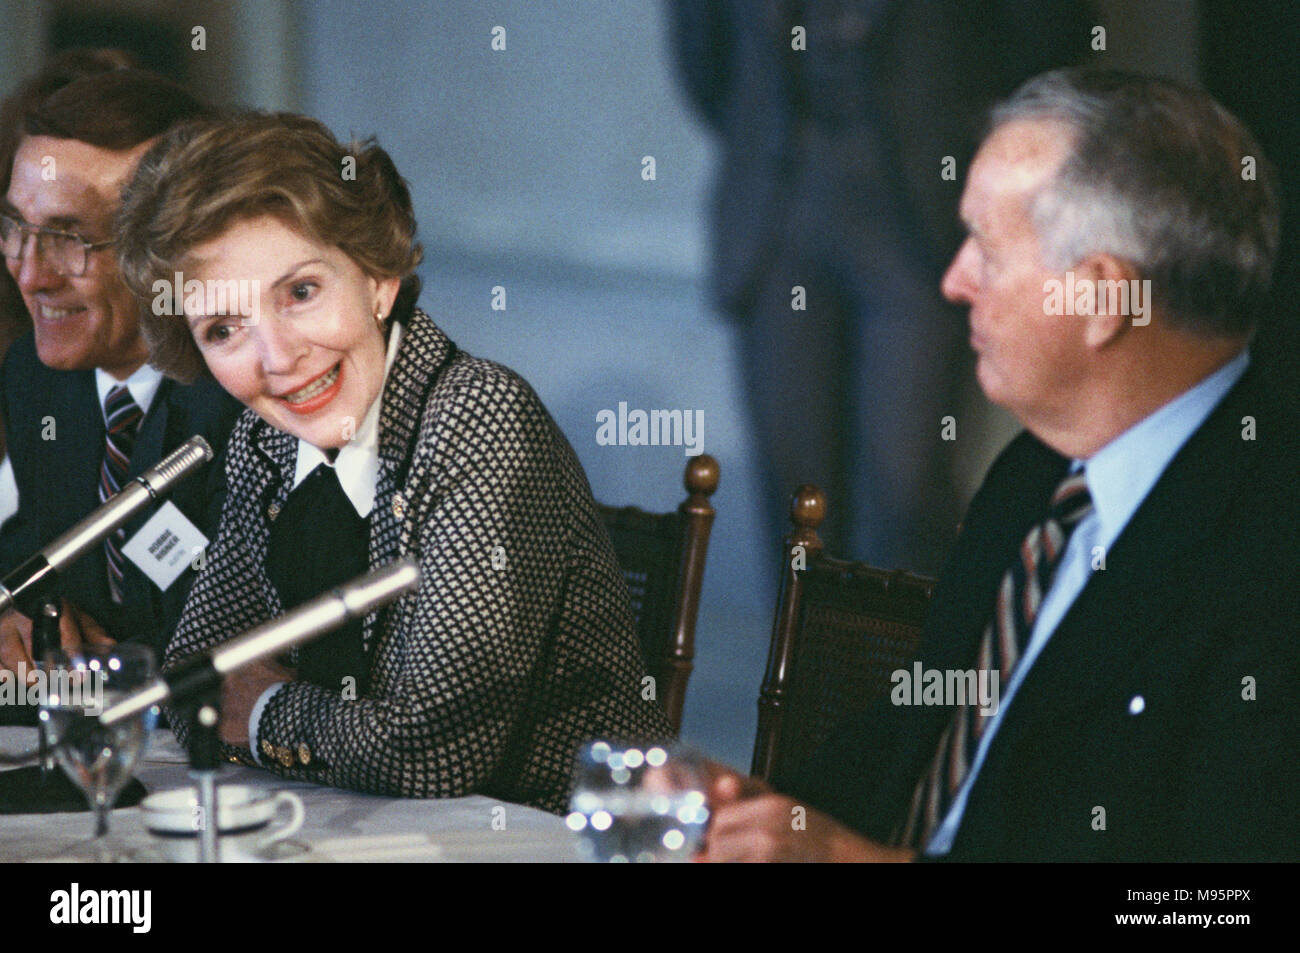 "First Lady Nancy Reagan on a panel in Dallas, Texas in February 1982.  This is part of an anti drug trip, ""Just Say No"" for the First Lady  Photograph by Dennis Brack - Stock Image"